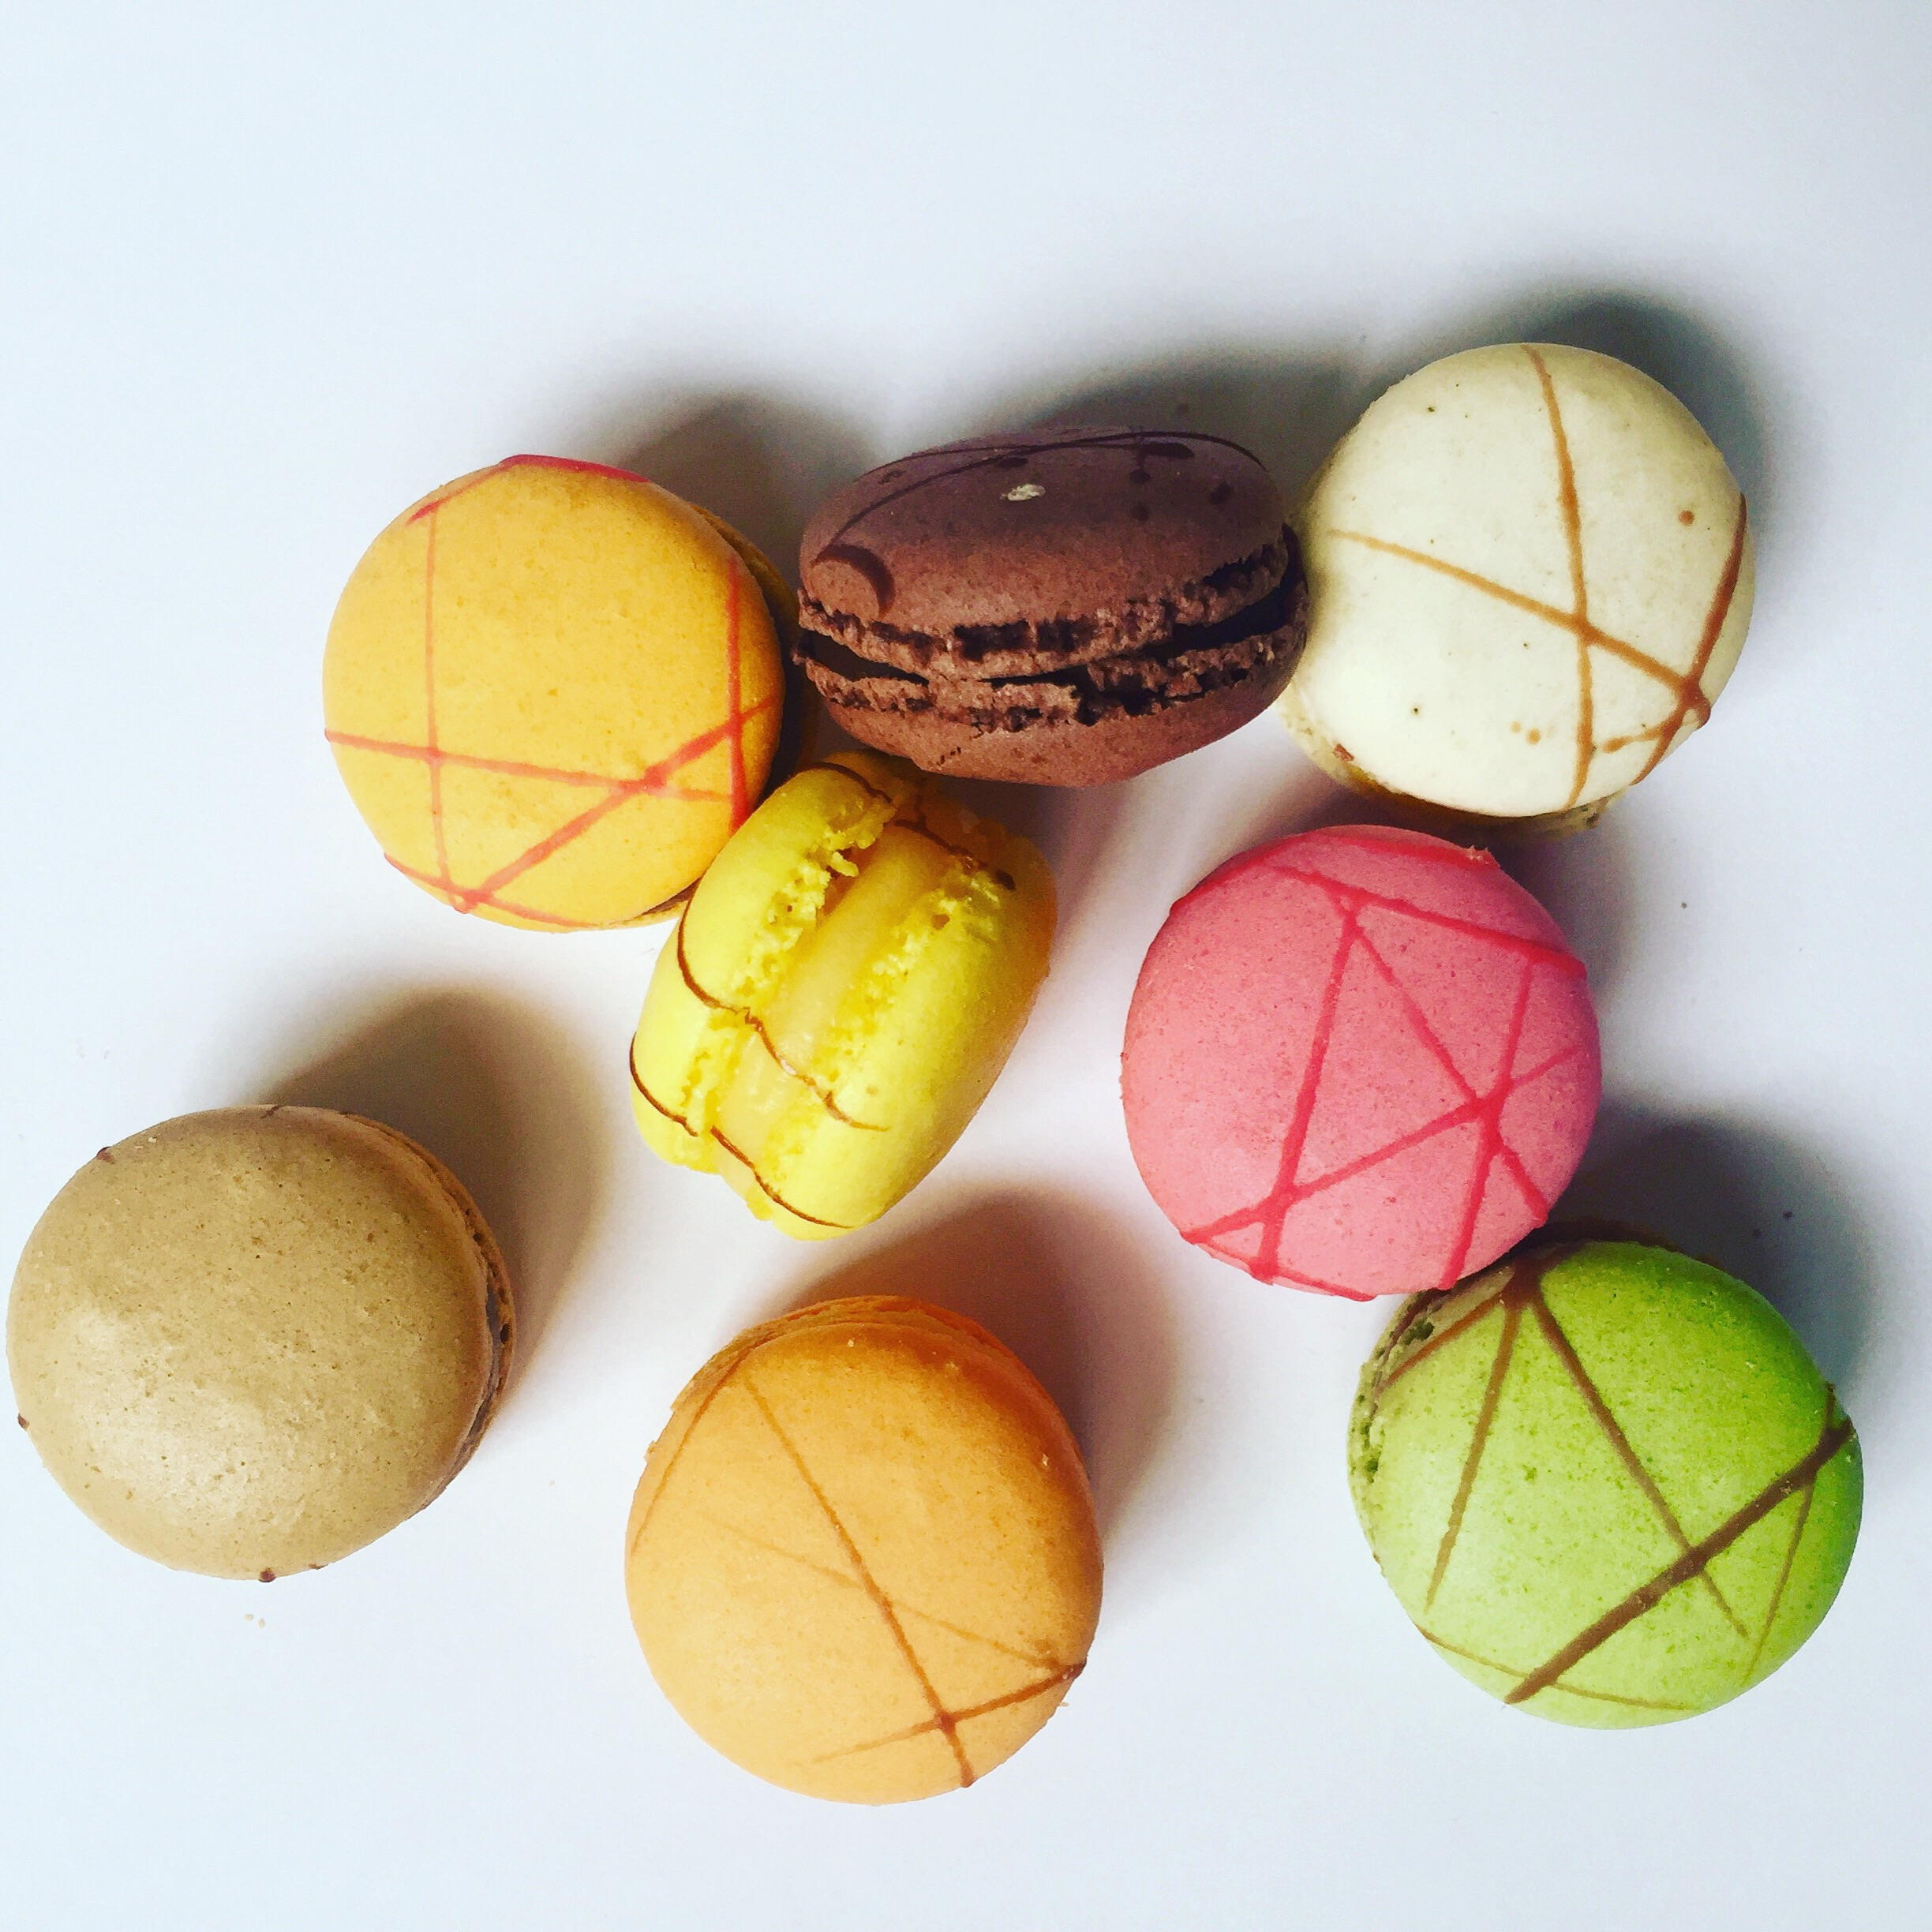 Macarons by Franck. Image property of The Entertaining House.